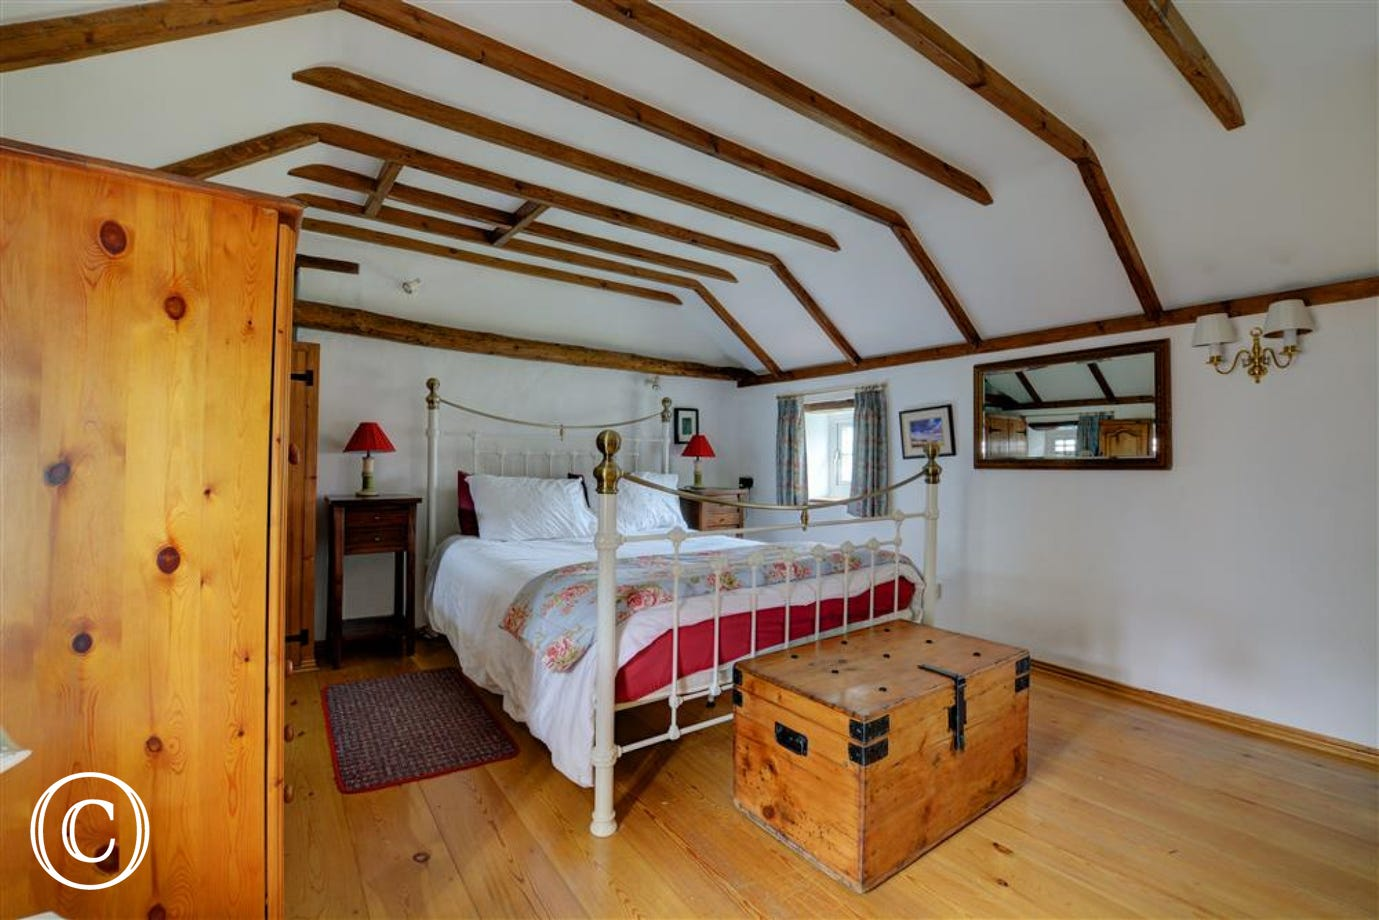 Cottage style bedroom with trunk at the foot of the bed and pine wardrobes.